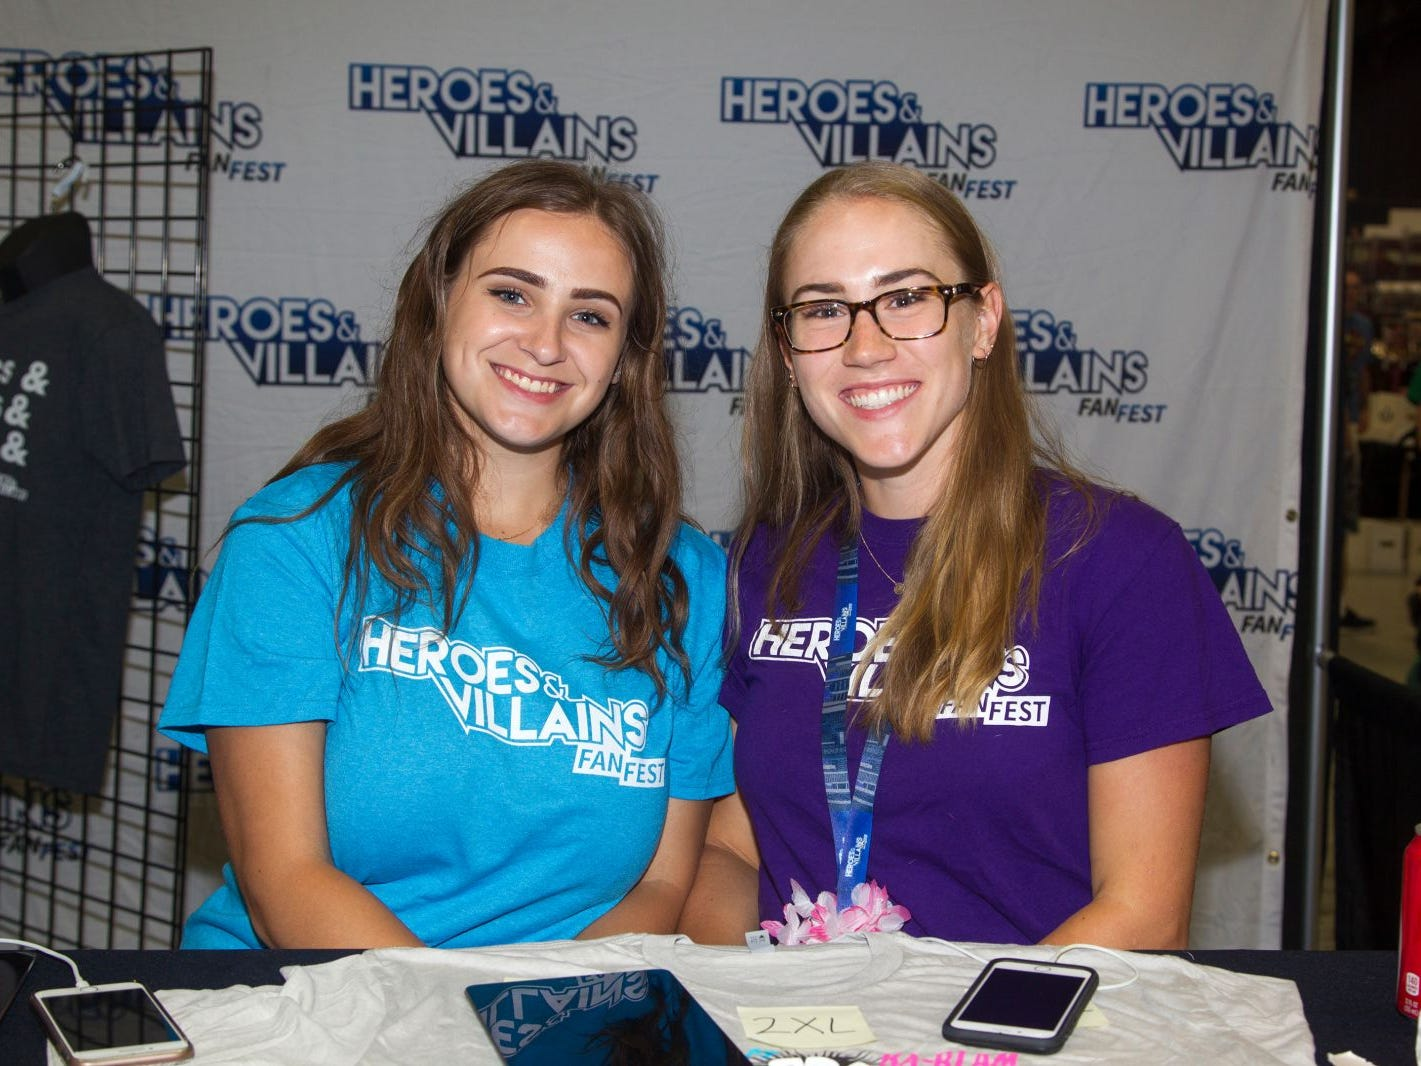 Rebecca and Lindsey. The 2018 Heroes and Villains Fan Fest took place at the New Jersey Convention & Expo Center. 09/09/2018